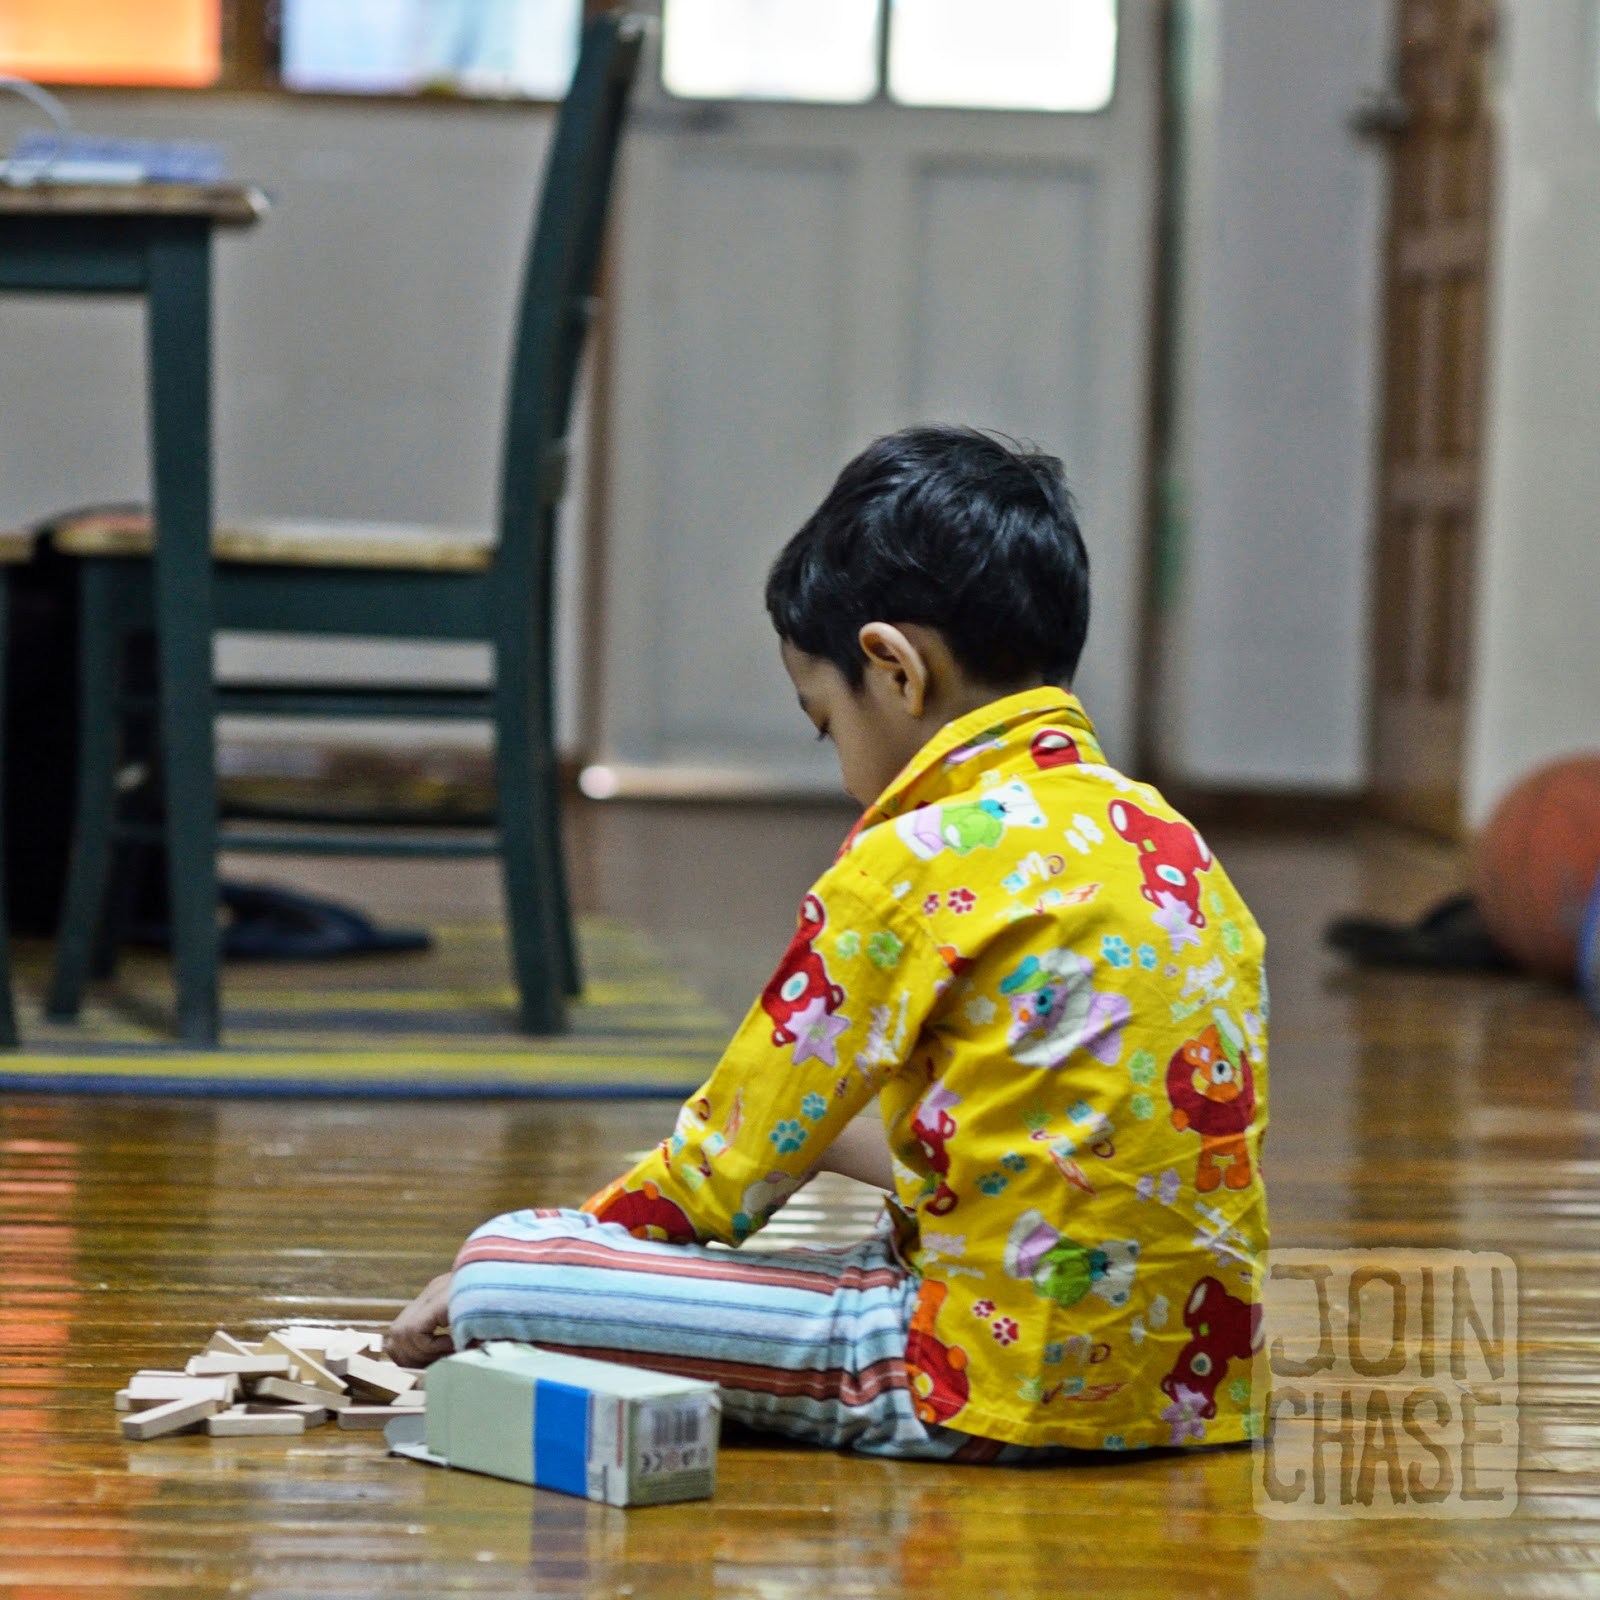 A boy playing with blocks on the floor of an apartment in Yangon, Myanmar.